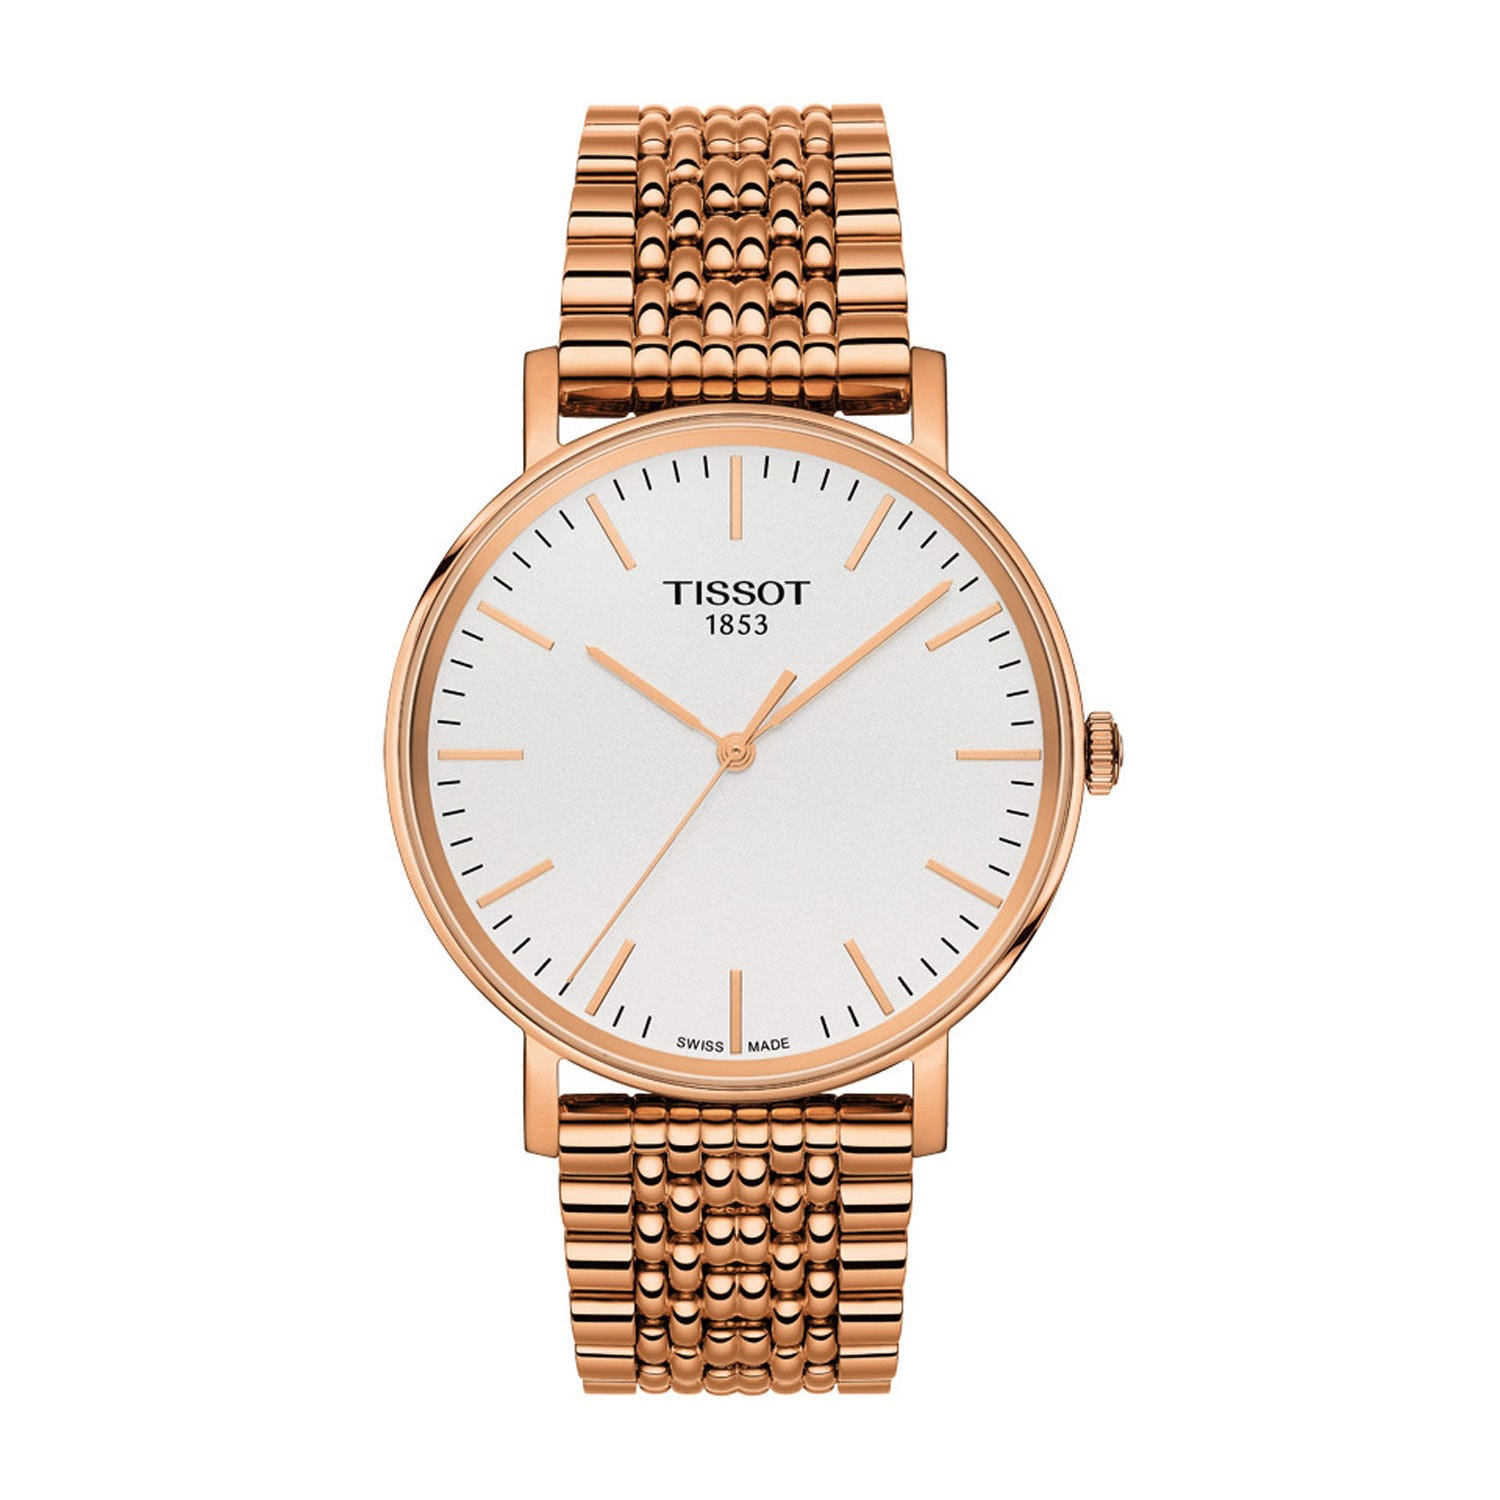 Tissot Everytime Men's White & Rose Dial Rose Gold Plated Bracelet watch